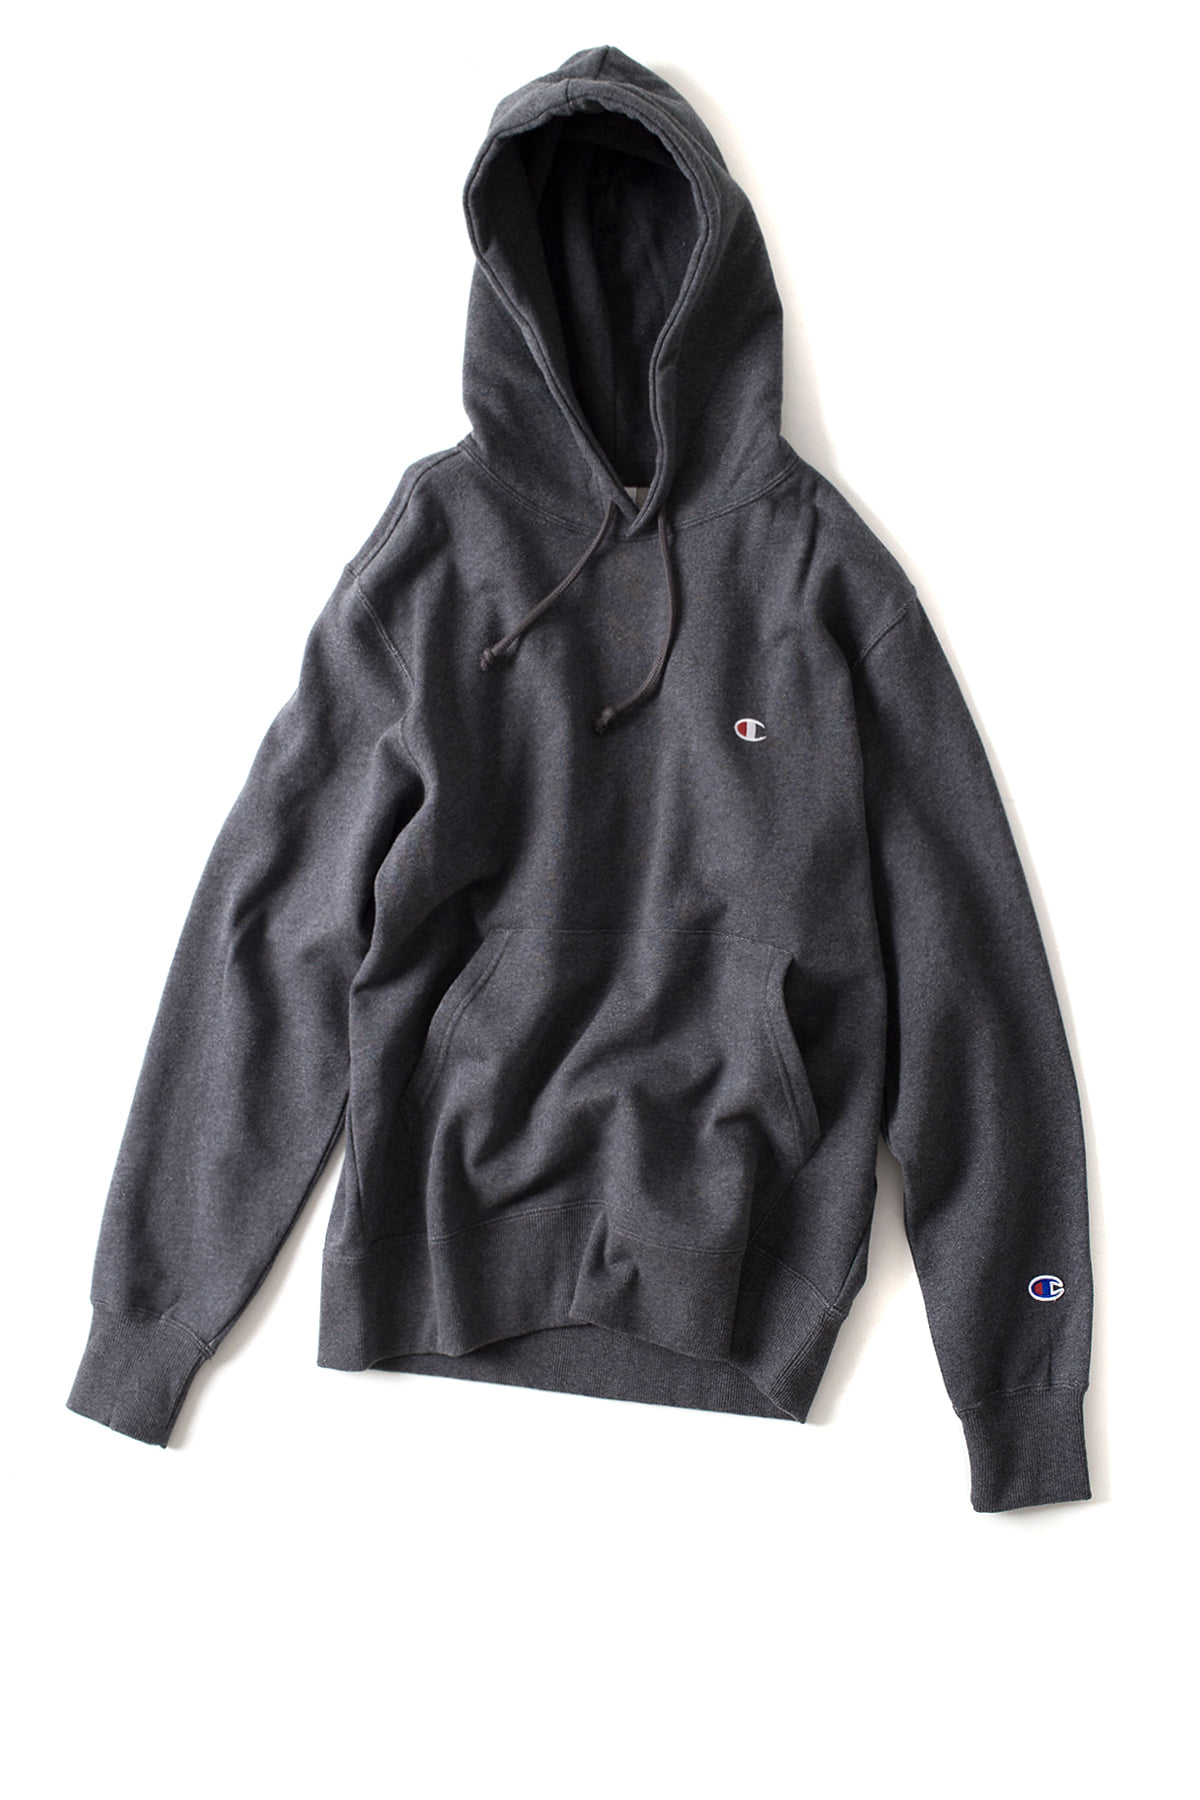 Champion : Basic Pullover Hooded SweatShirt (Heather Charcoal)